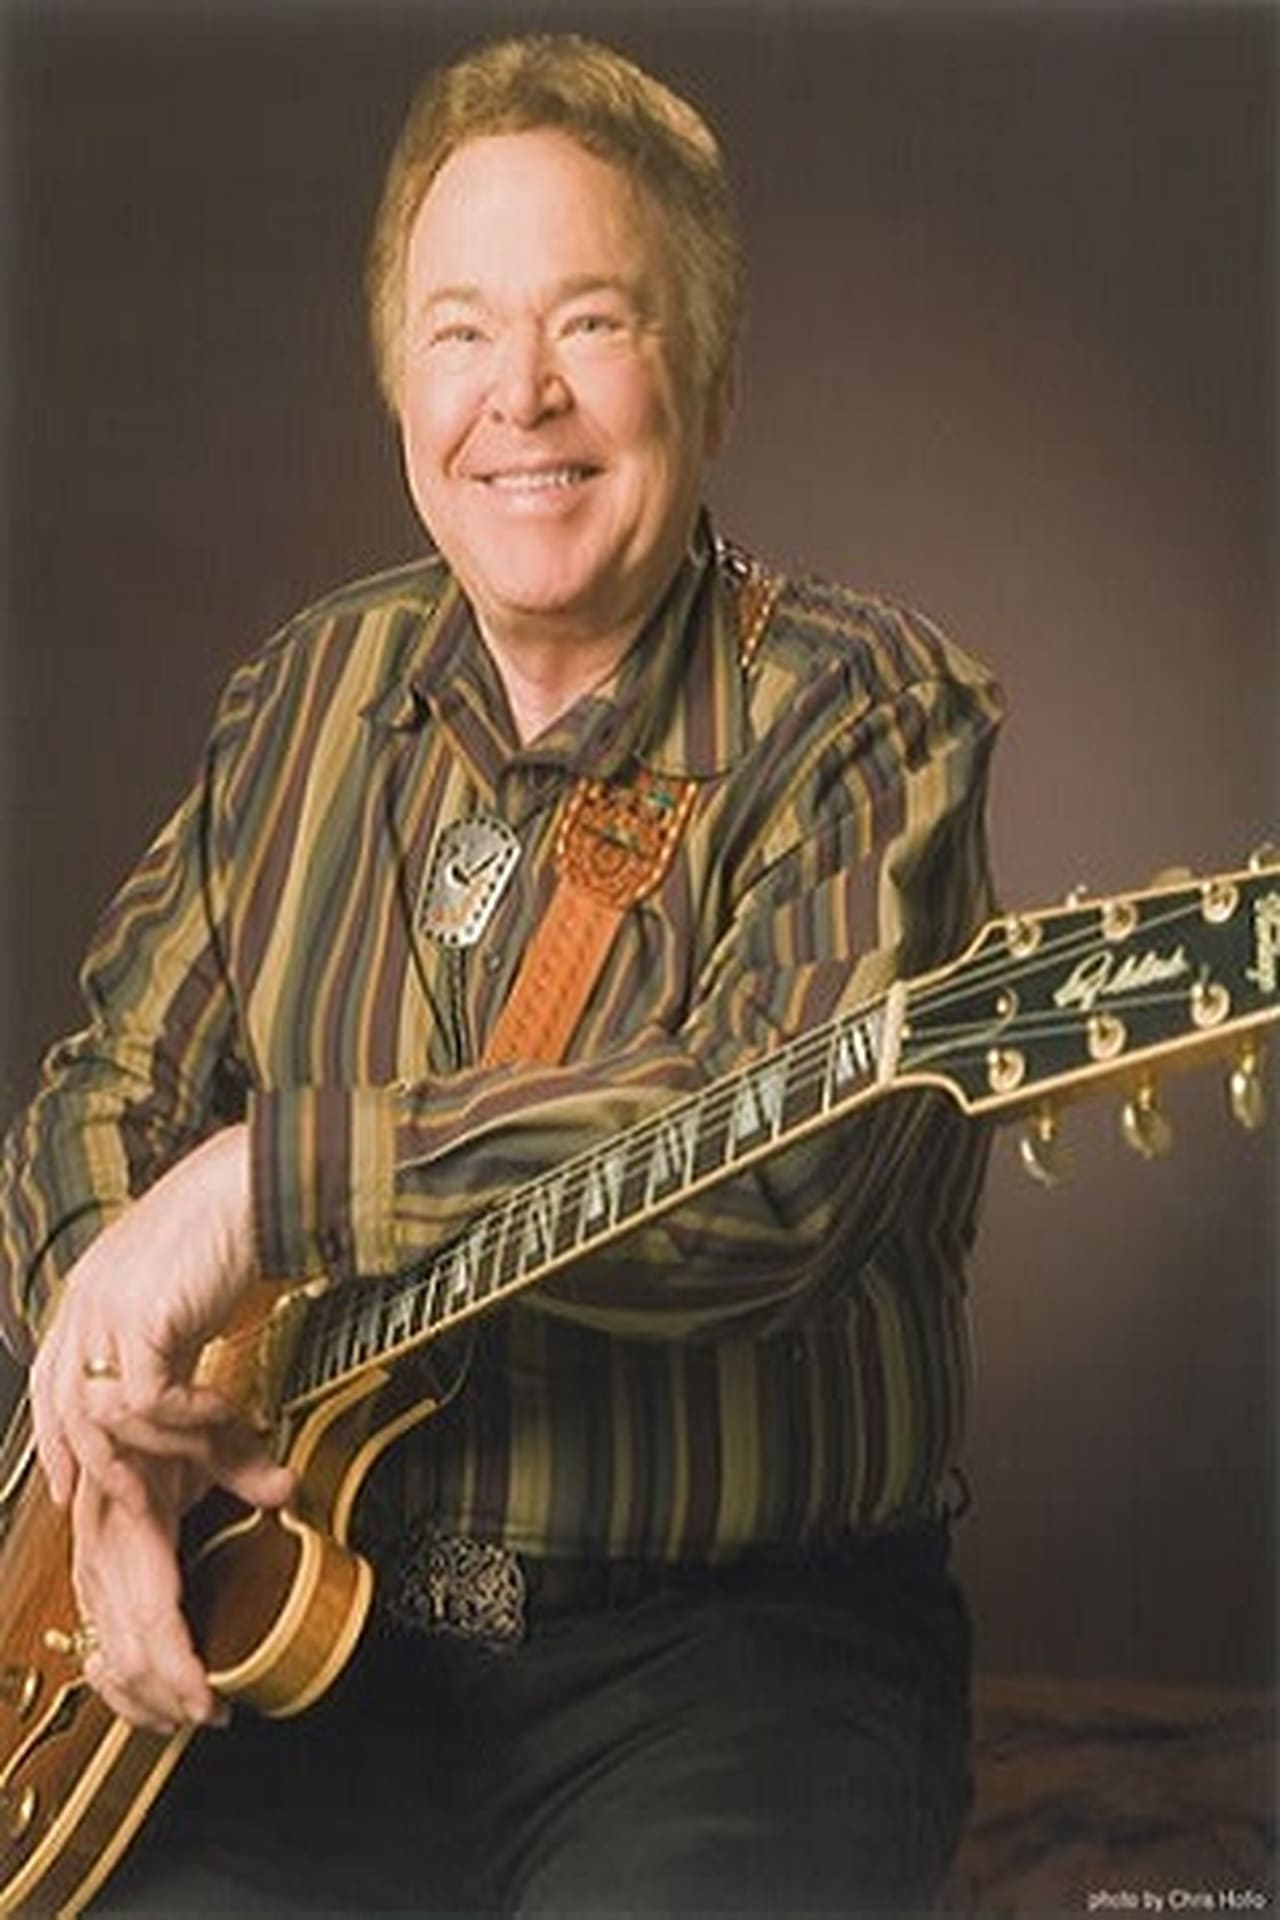 a biography of roy clark Roy clark is an american country musician who has a net worth of $1 million born in meherrin, virginia on april 15, 1933, clark has been an active musician since 1950.